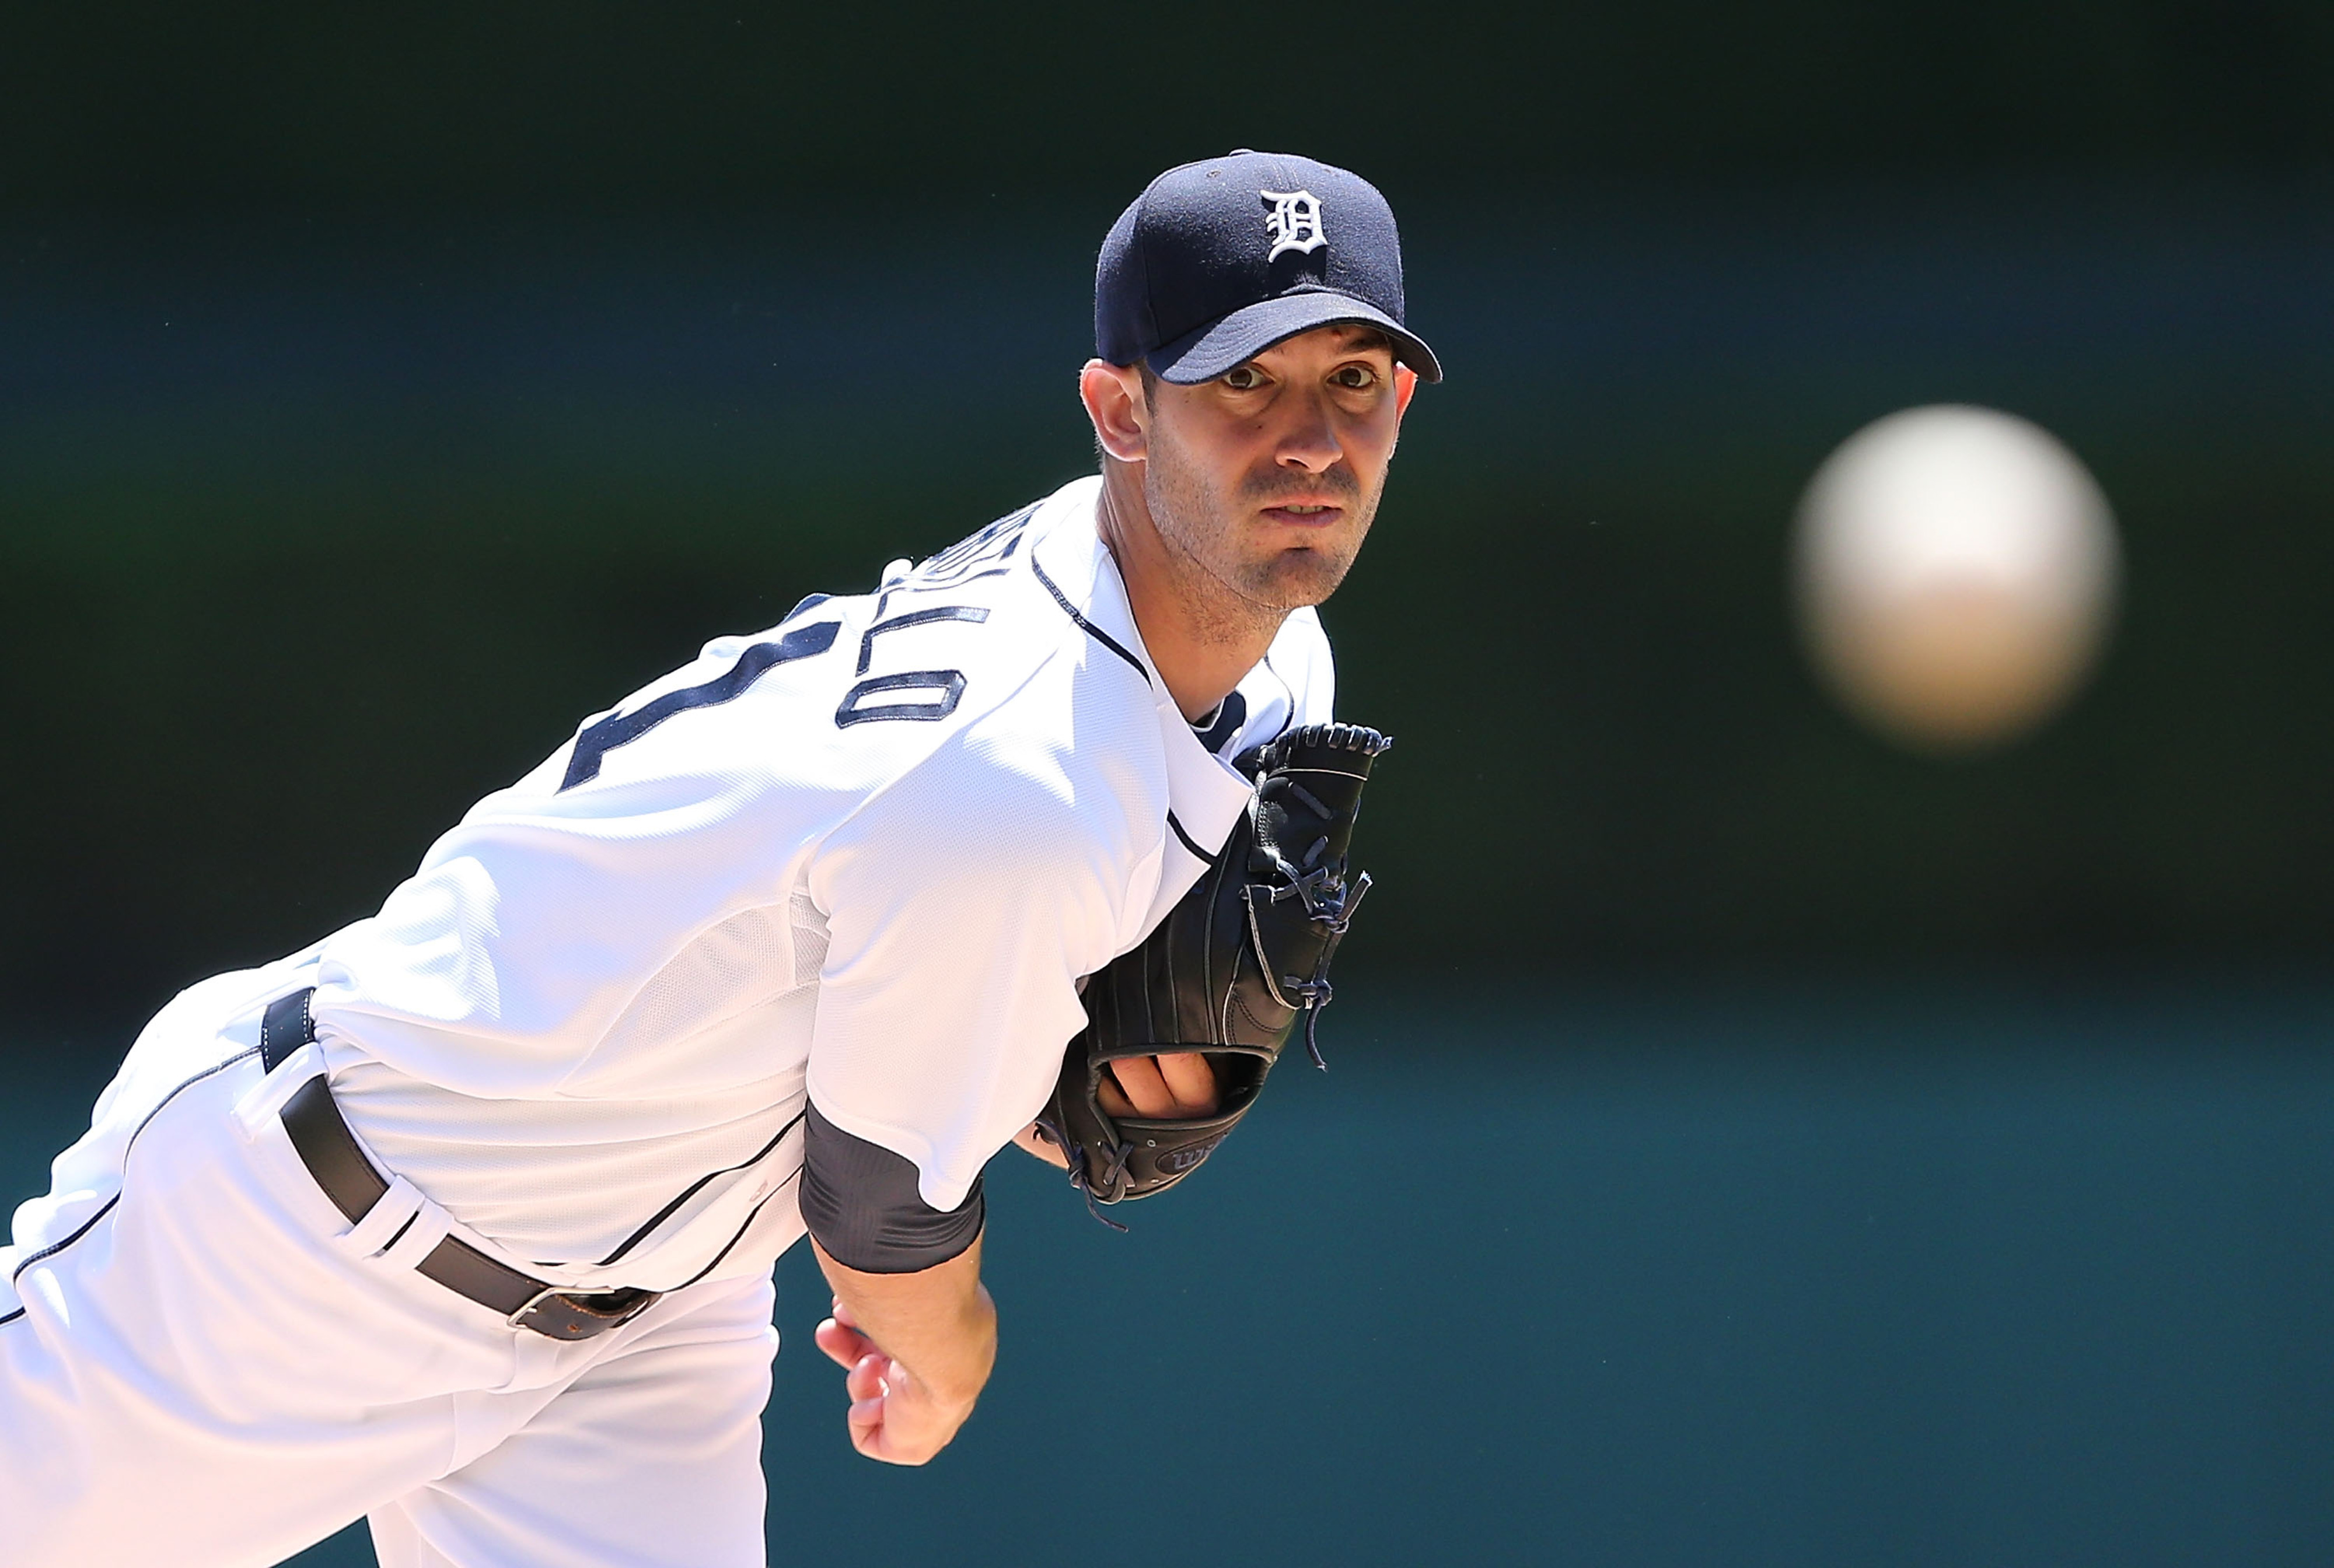 Rick_porcello_medium